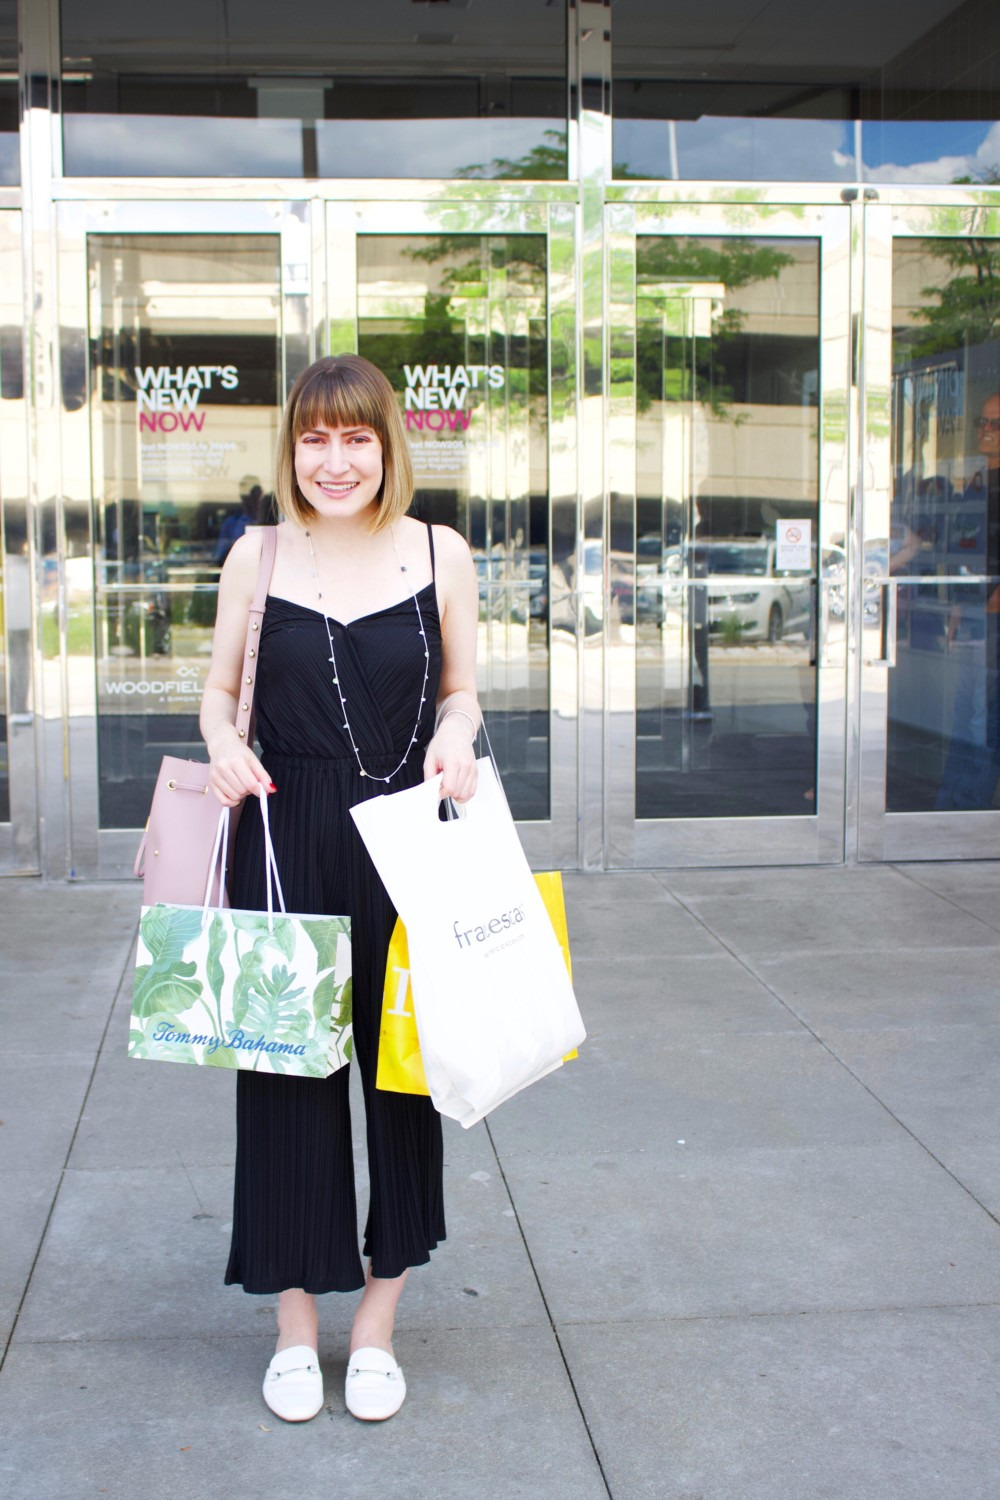 Summer Shopping at Woodfield Mall - Allie's Fashion Alley